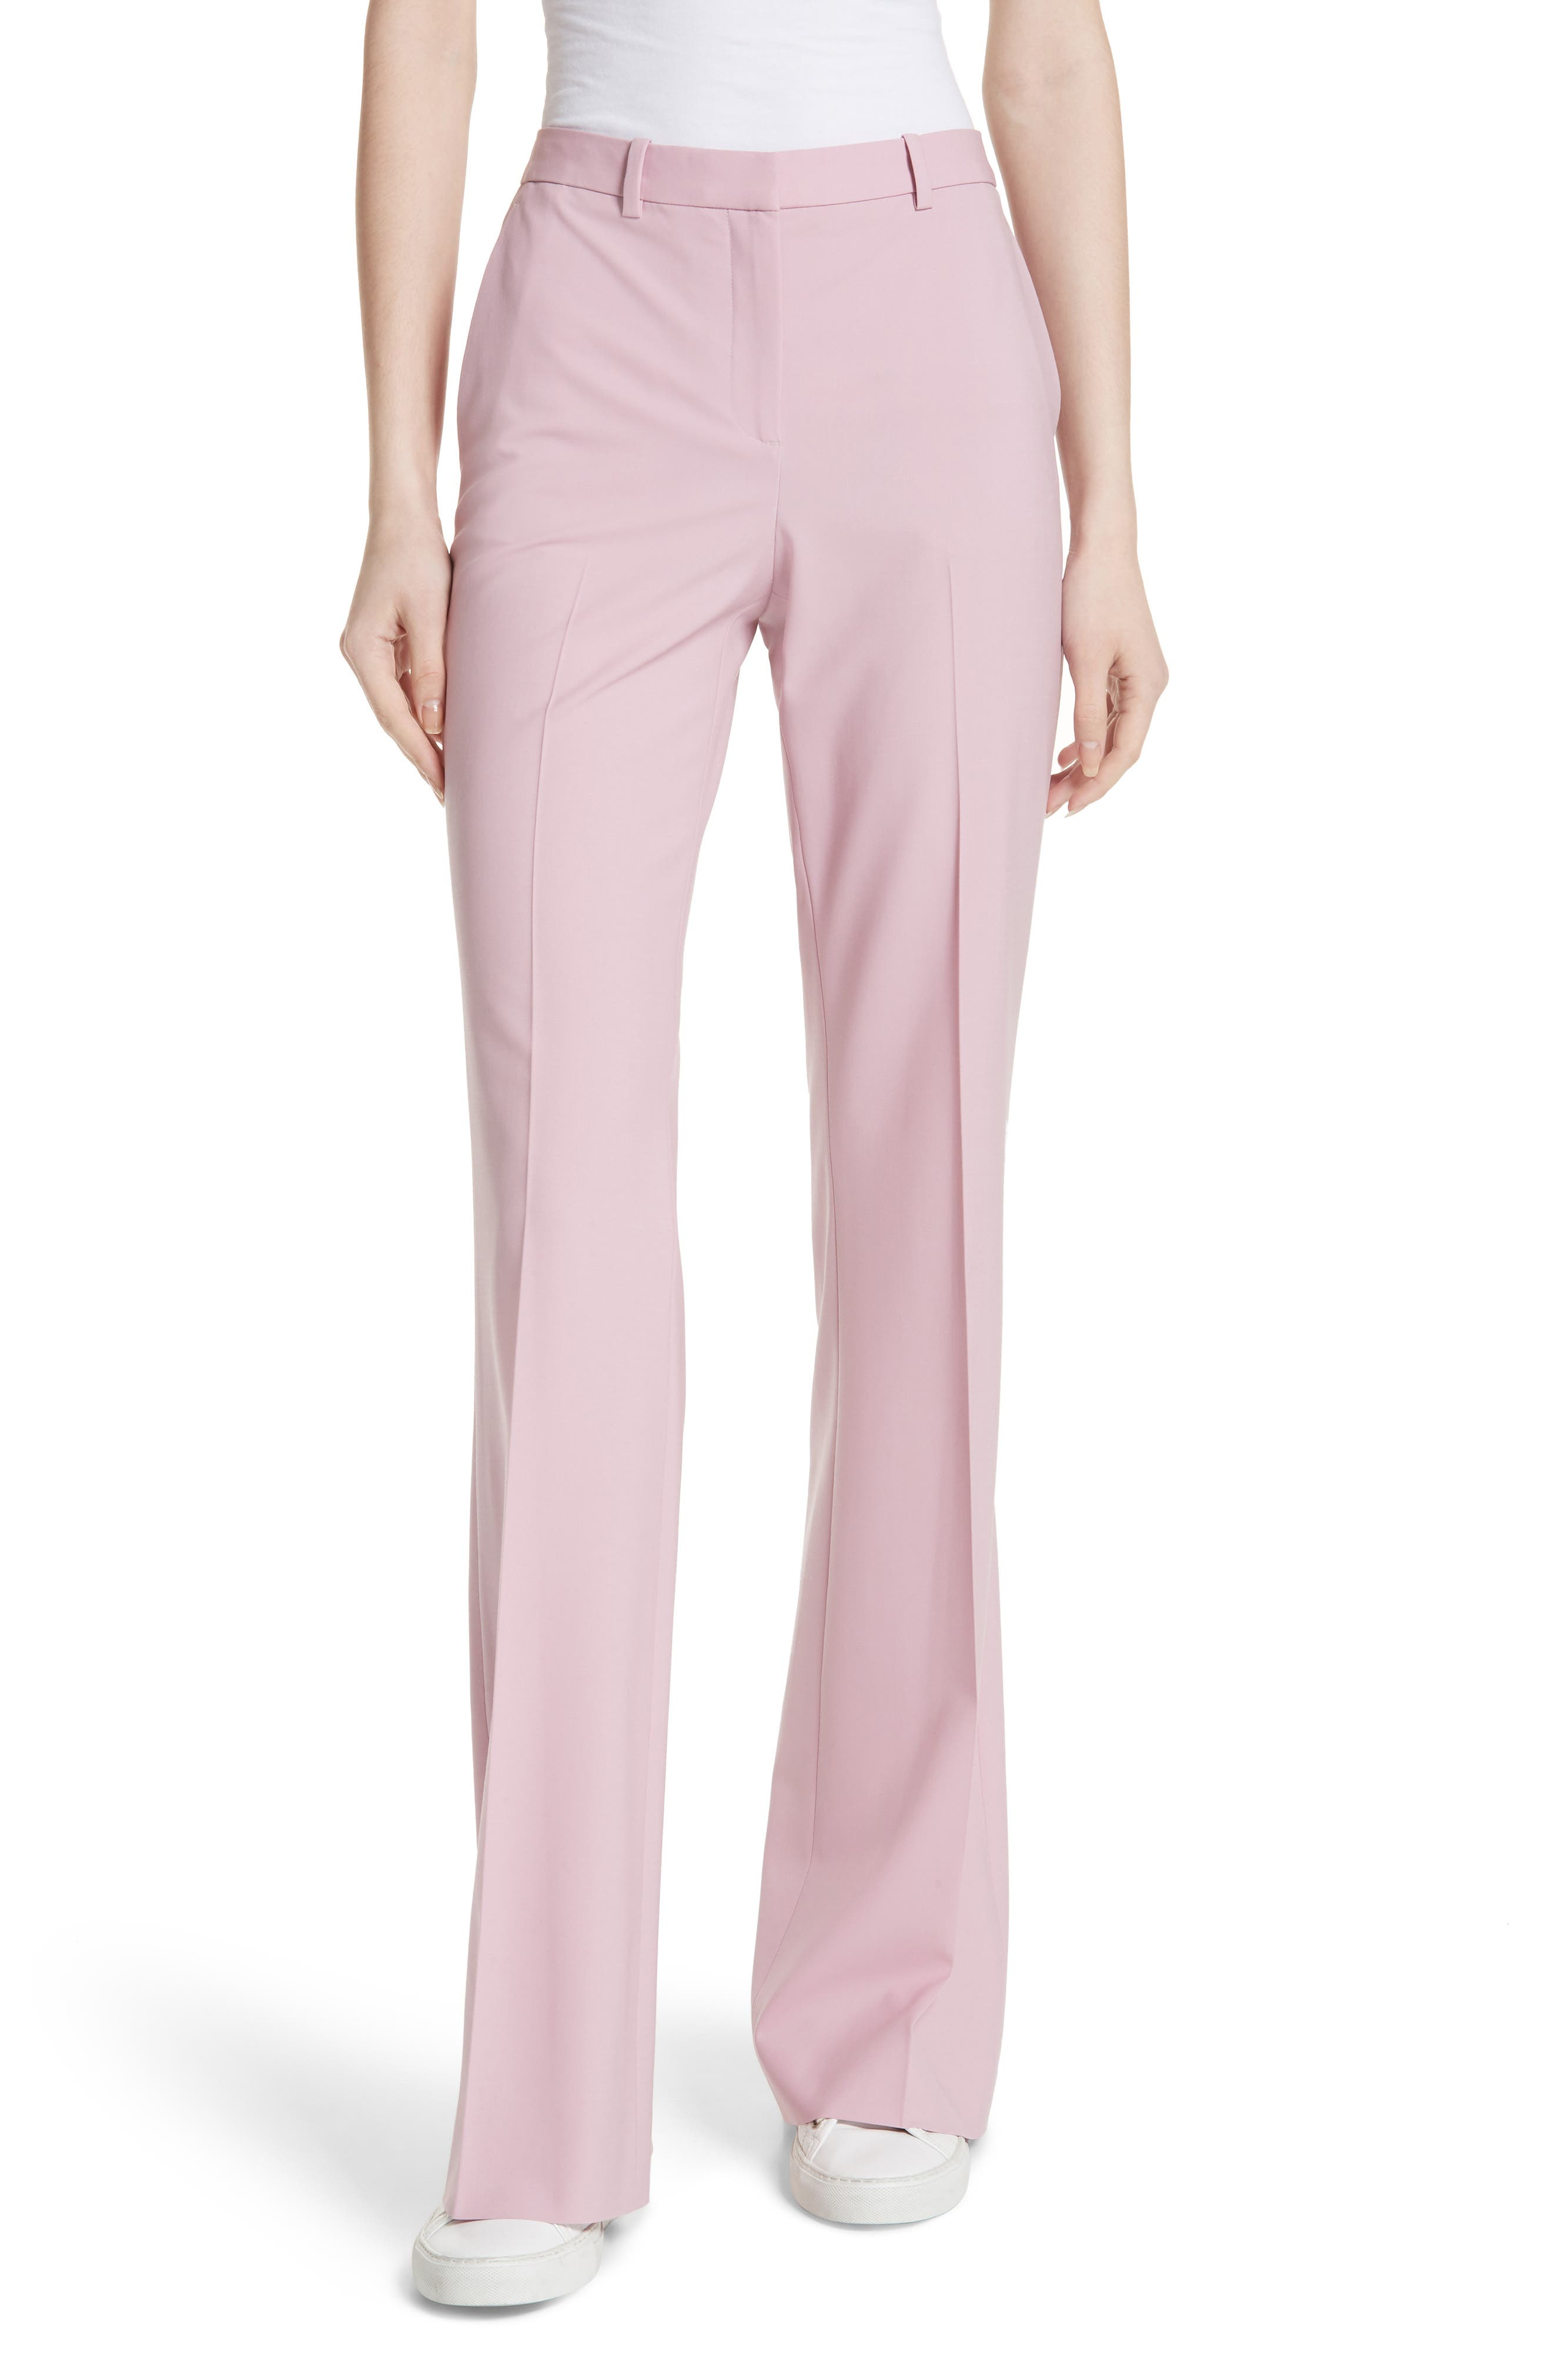 Demitria 2 Stretch Wool Suit Pants,                         Main,                         color, Berry Tint